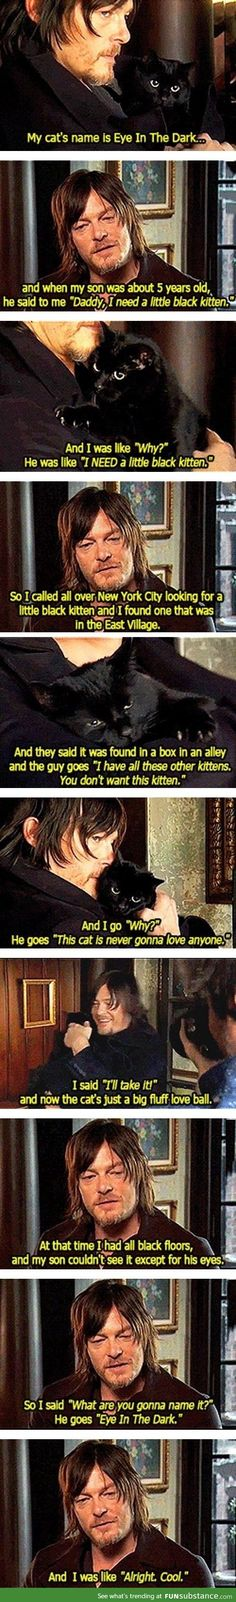 Norman reedus' cat